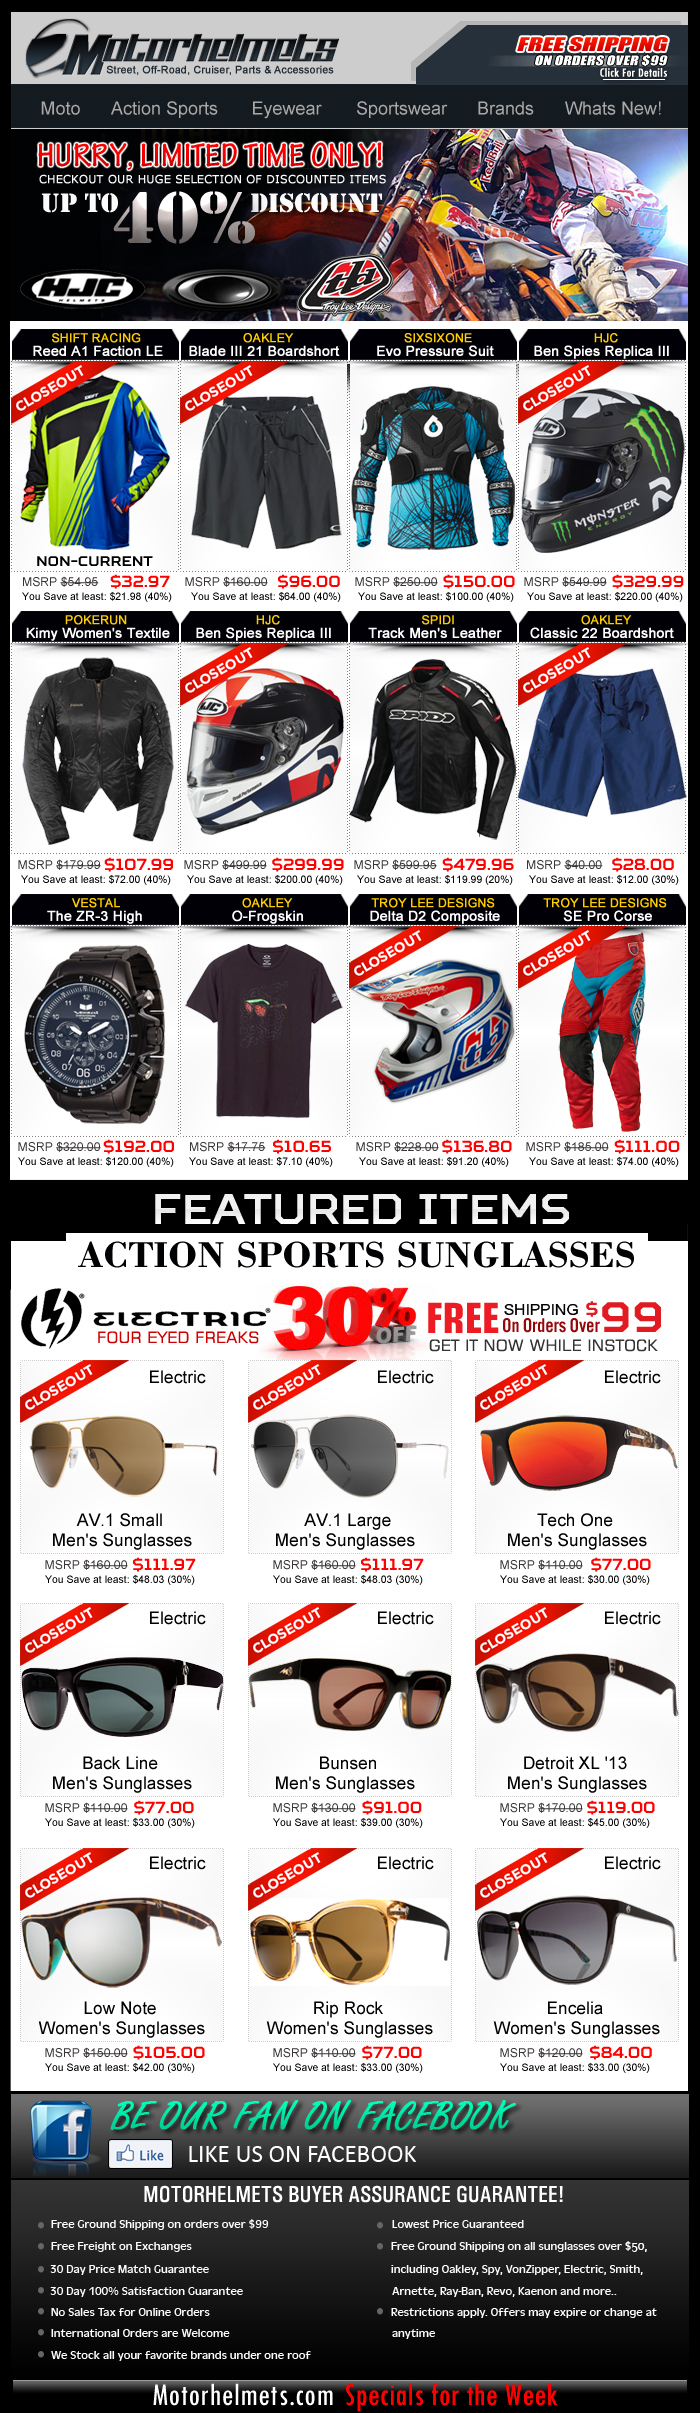 Up to 40% OFF on HJC, Oakley and TLD Gear and Apparel!